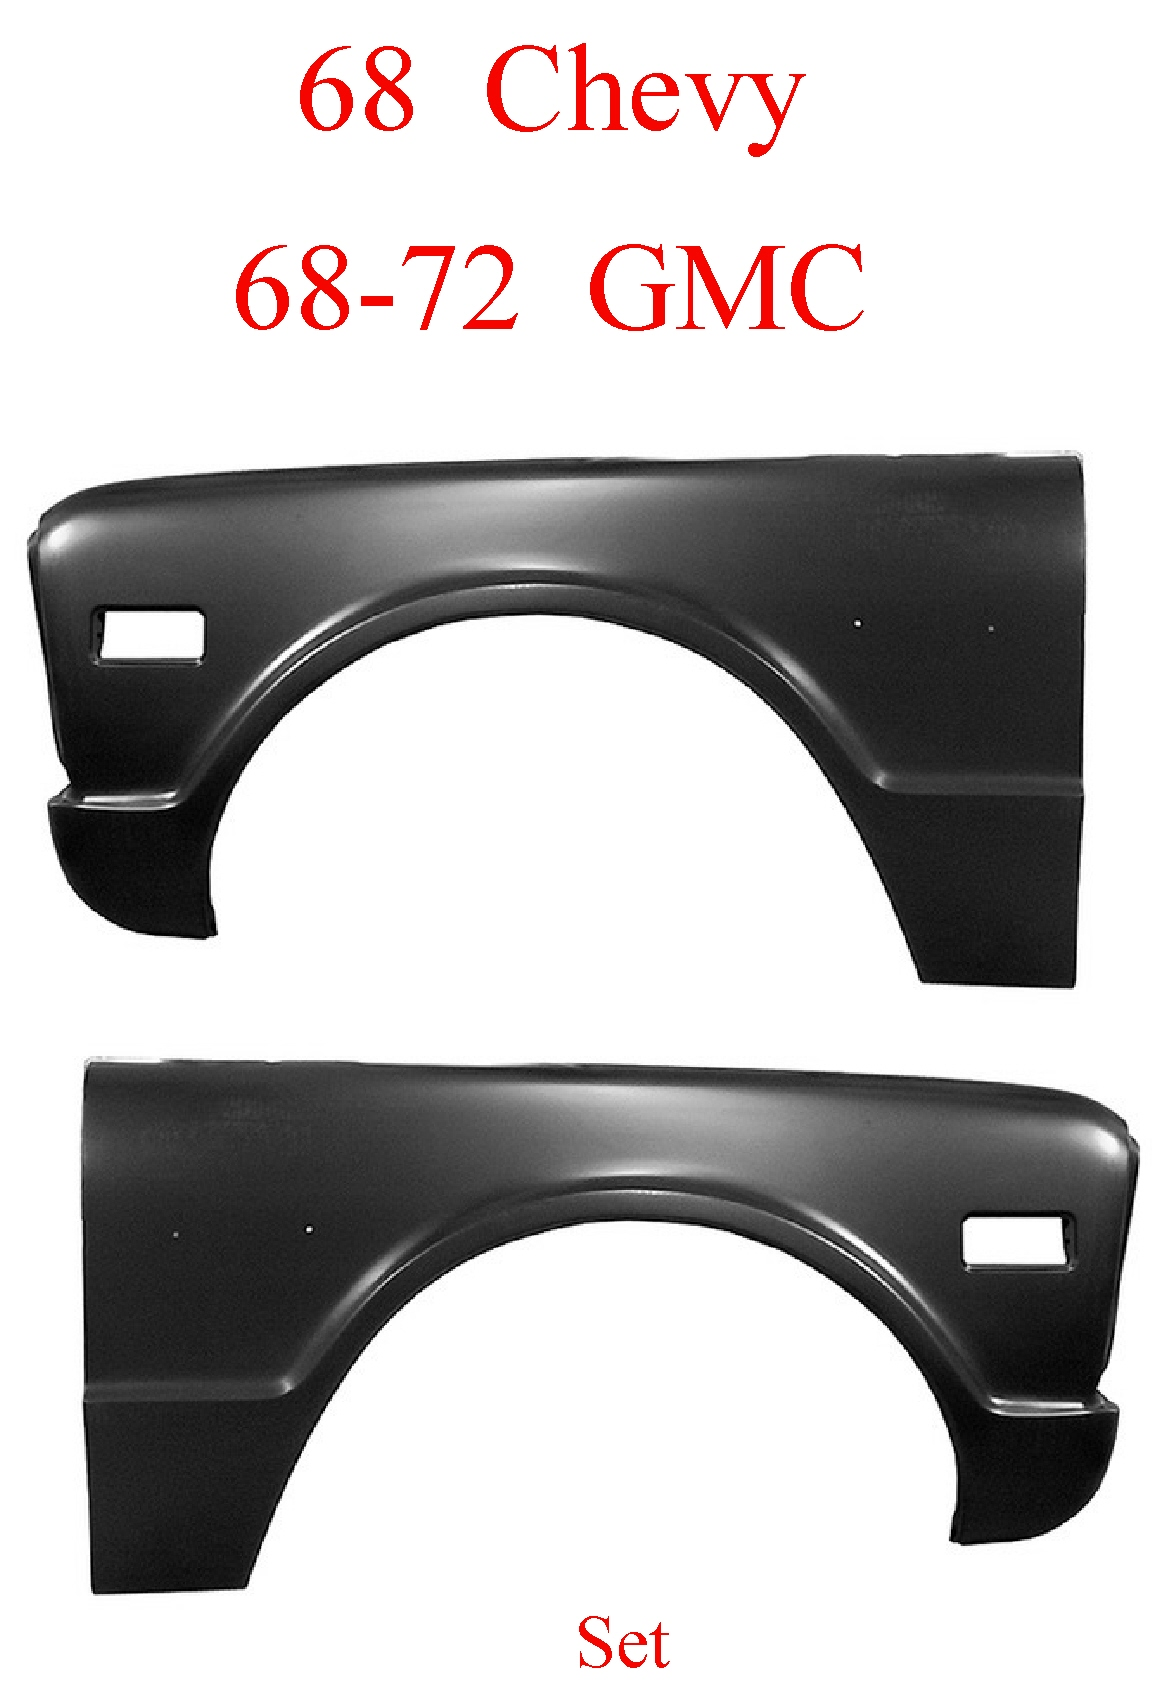 68 Chevy 68-72 GMC Front Fender Assembly Set